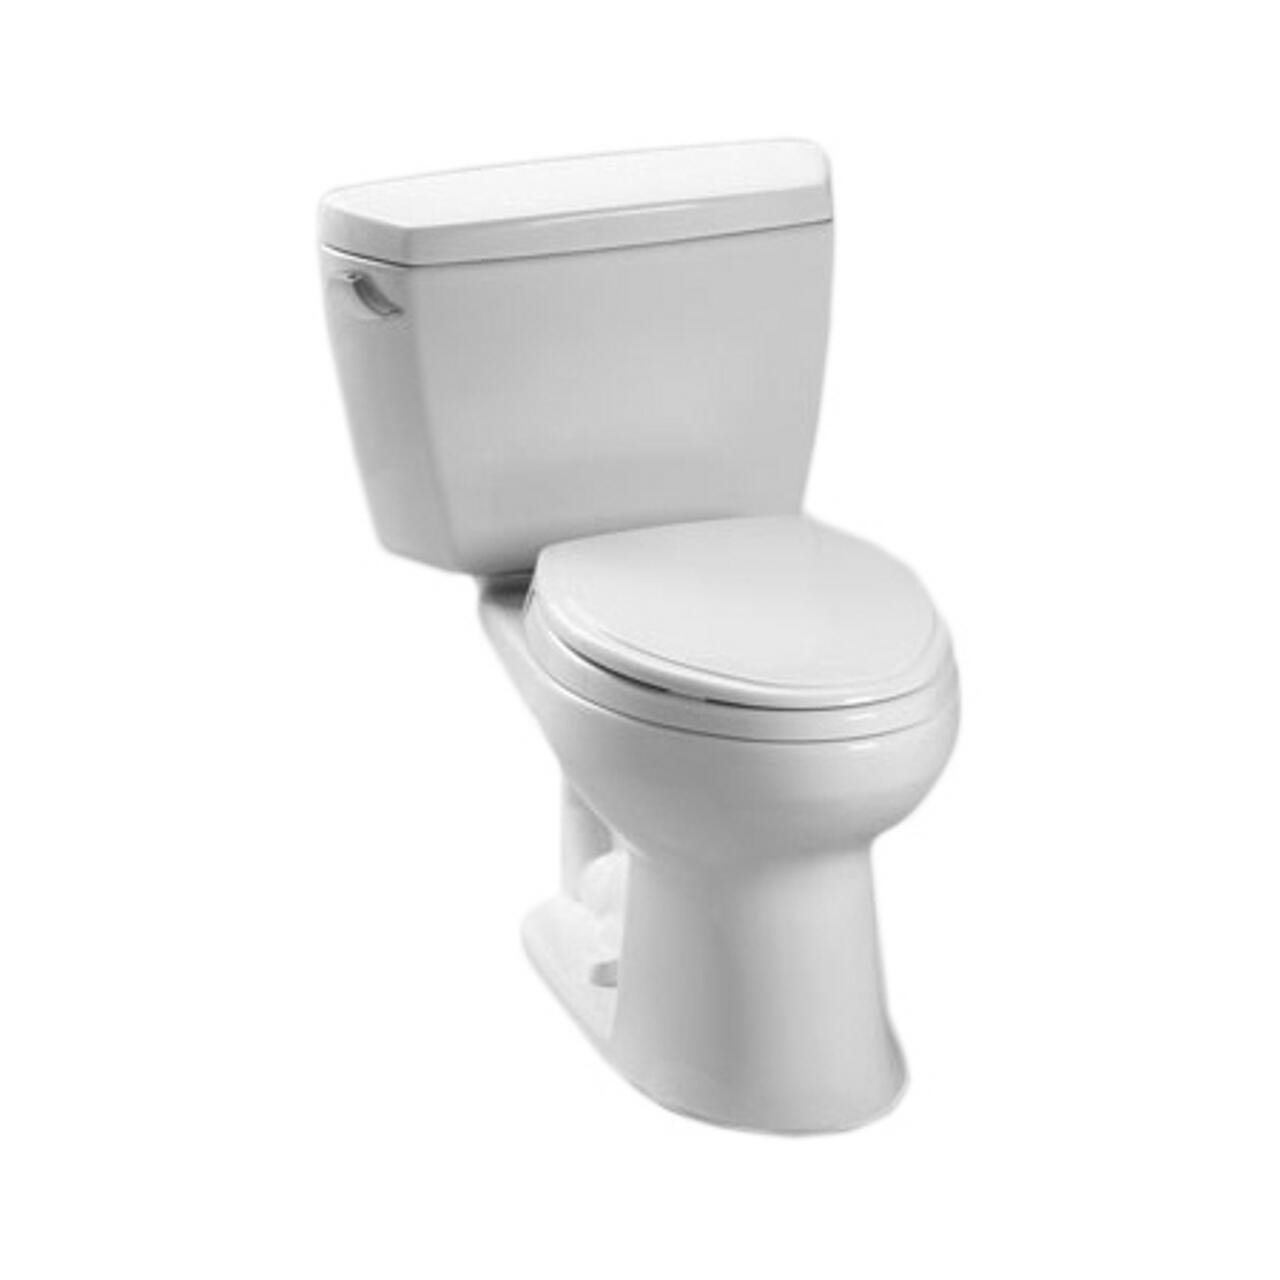 Toto CST744SDNo.01 Drake Toilet, 1.6-GPF with Insulated Tank, Cotton by TOTO